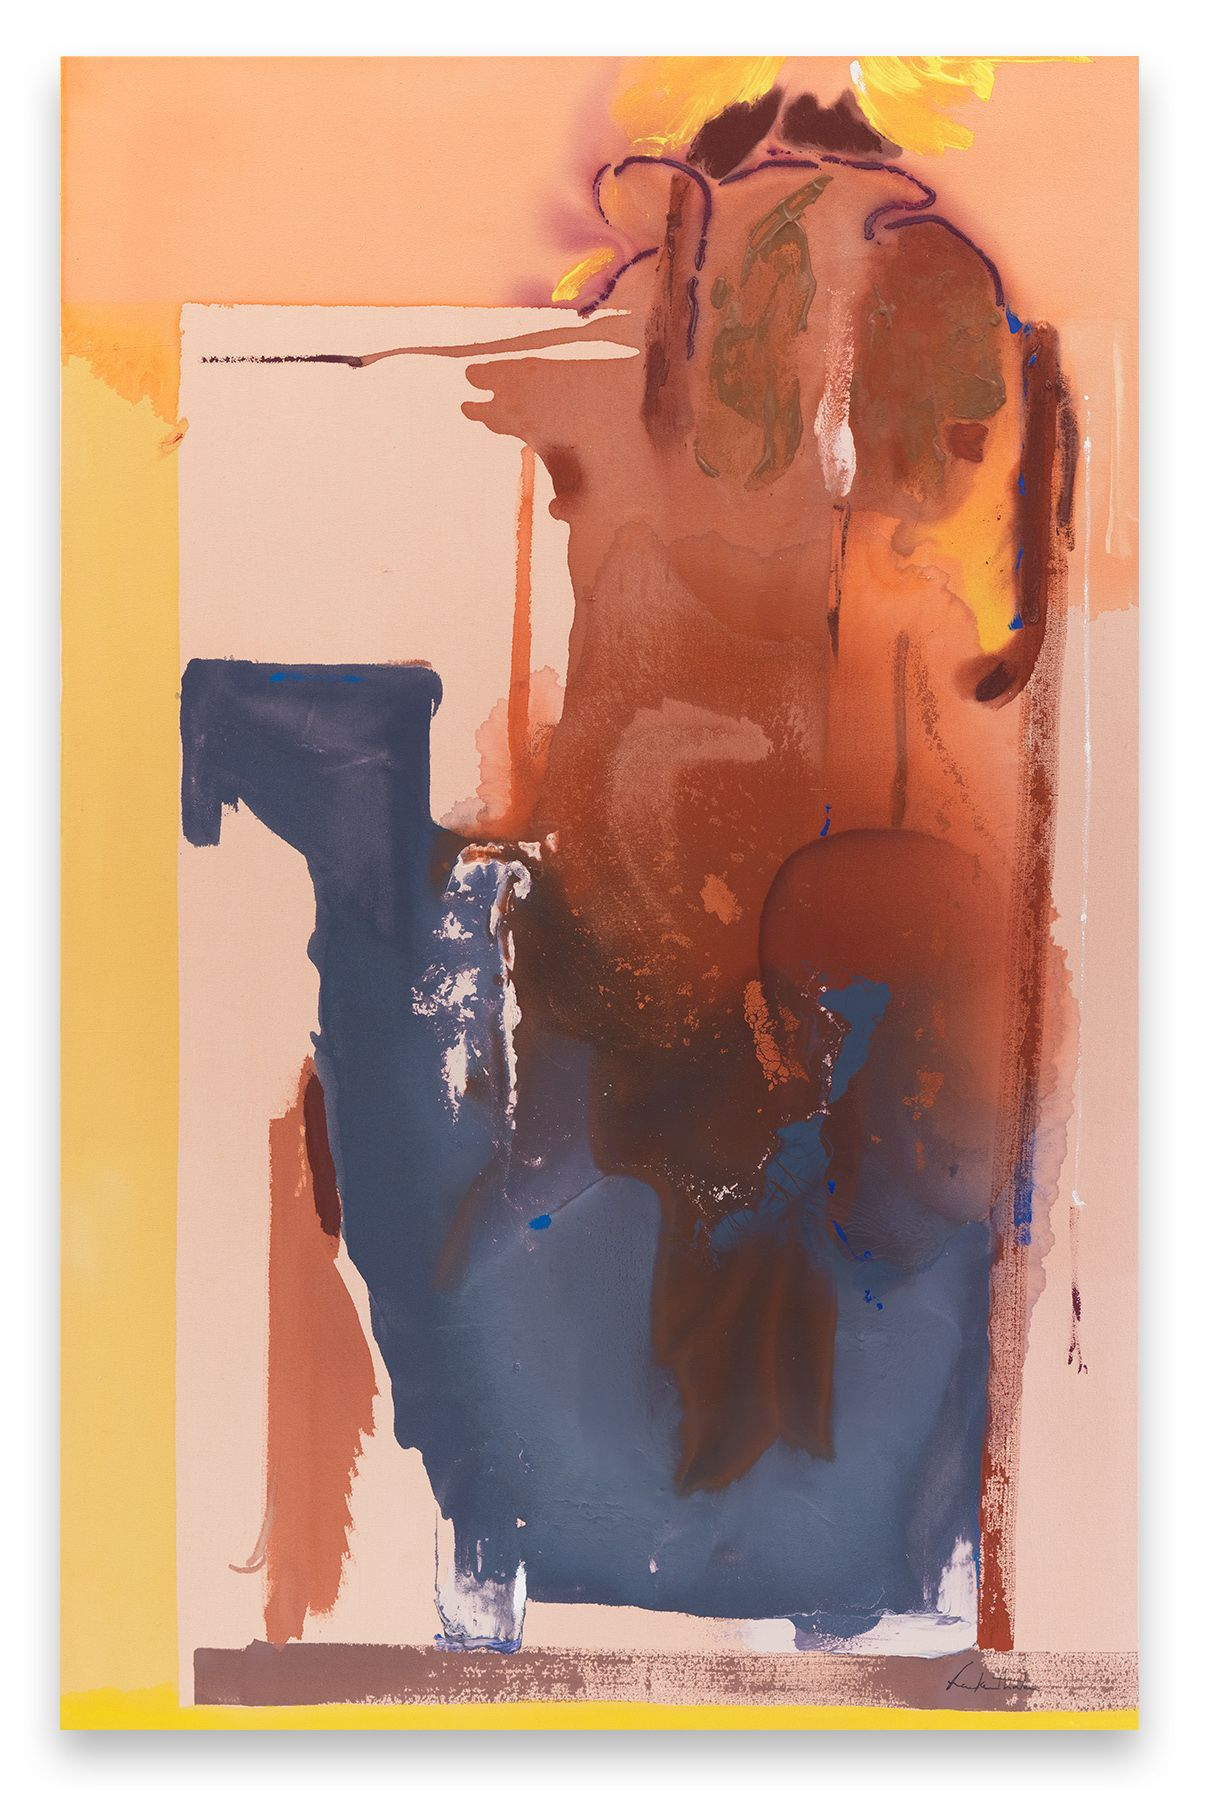 Helen Frankenthaler, Groundswell, 1987,Acrylic on canvas,79 1/2 x 51 1/4 inches,201.9 x 130.2 cm,MMG#11633,